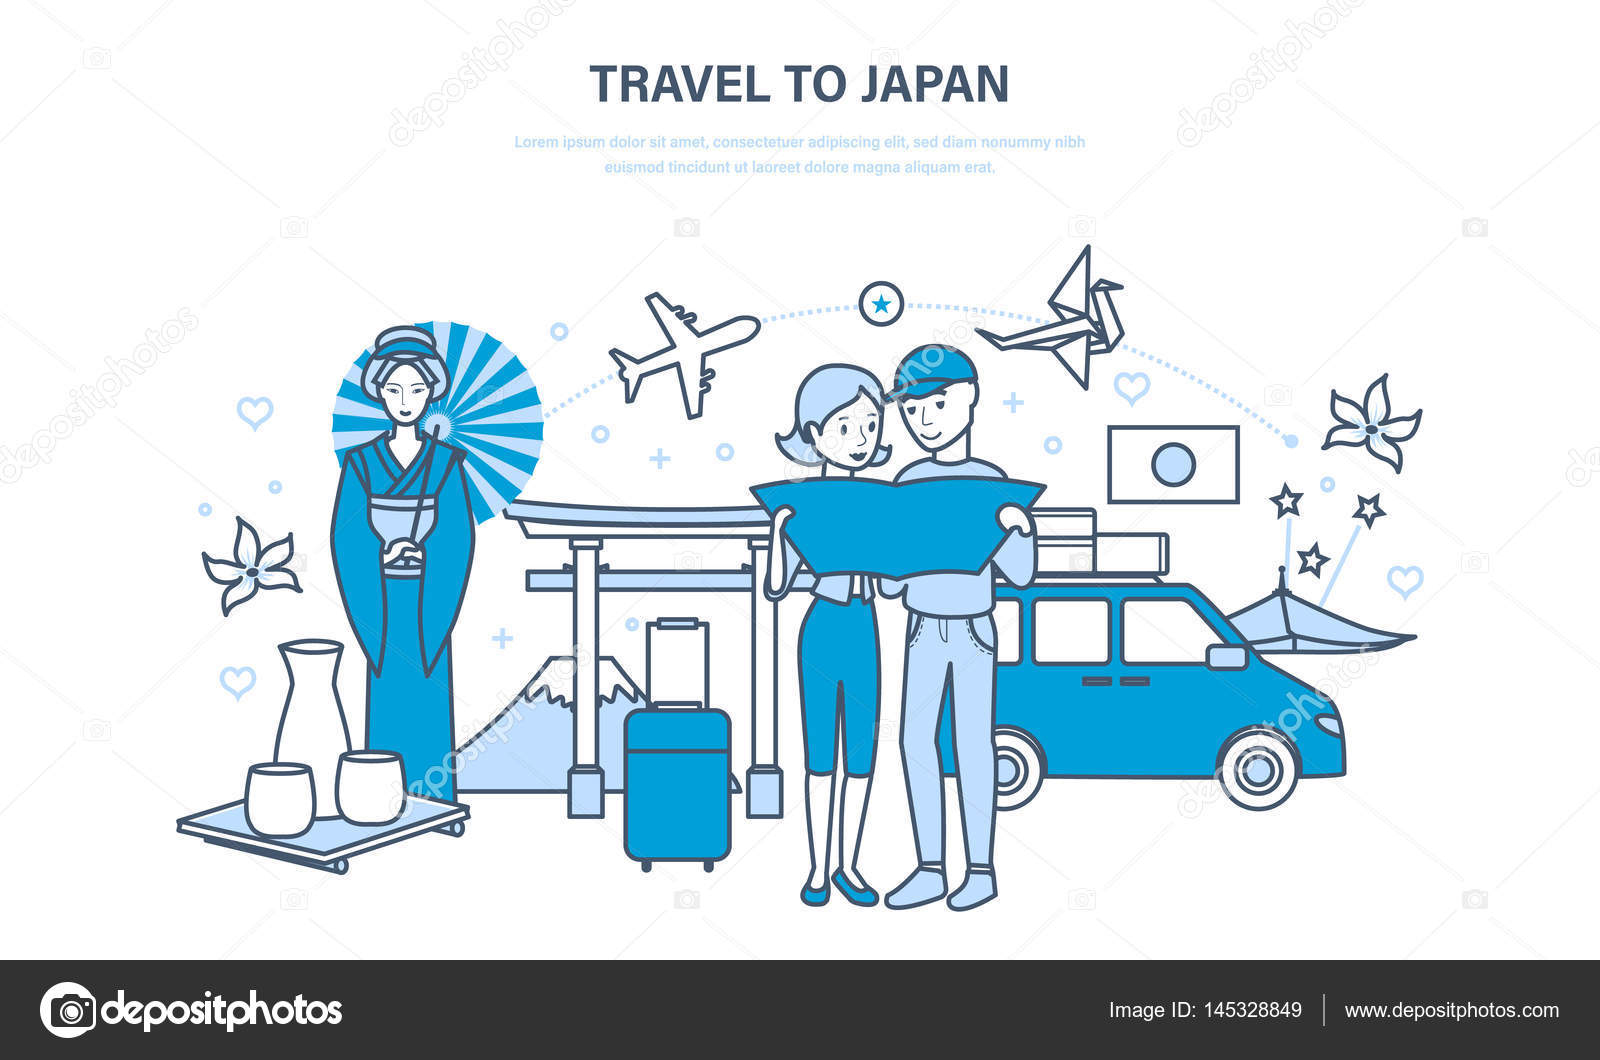 Travel clipart family tradition And family joint with design